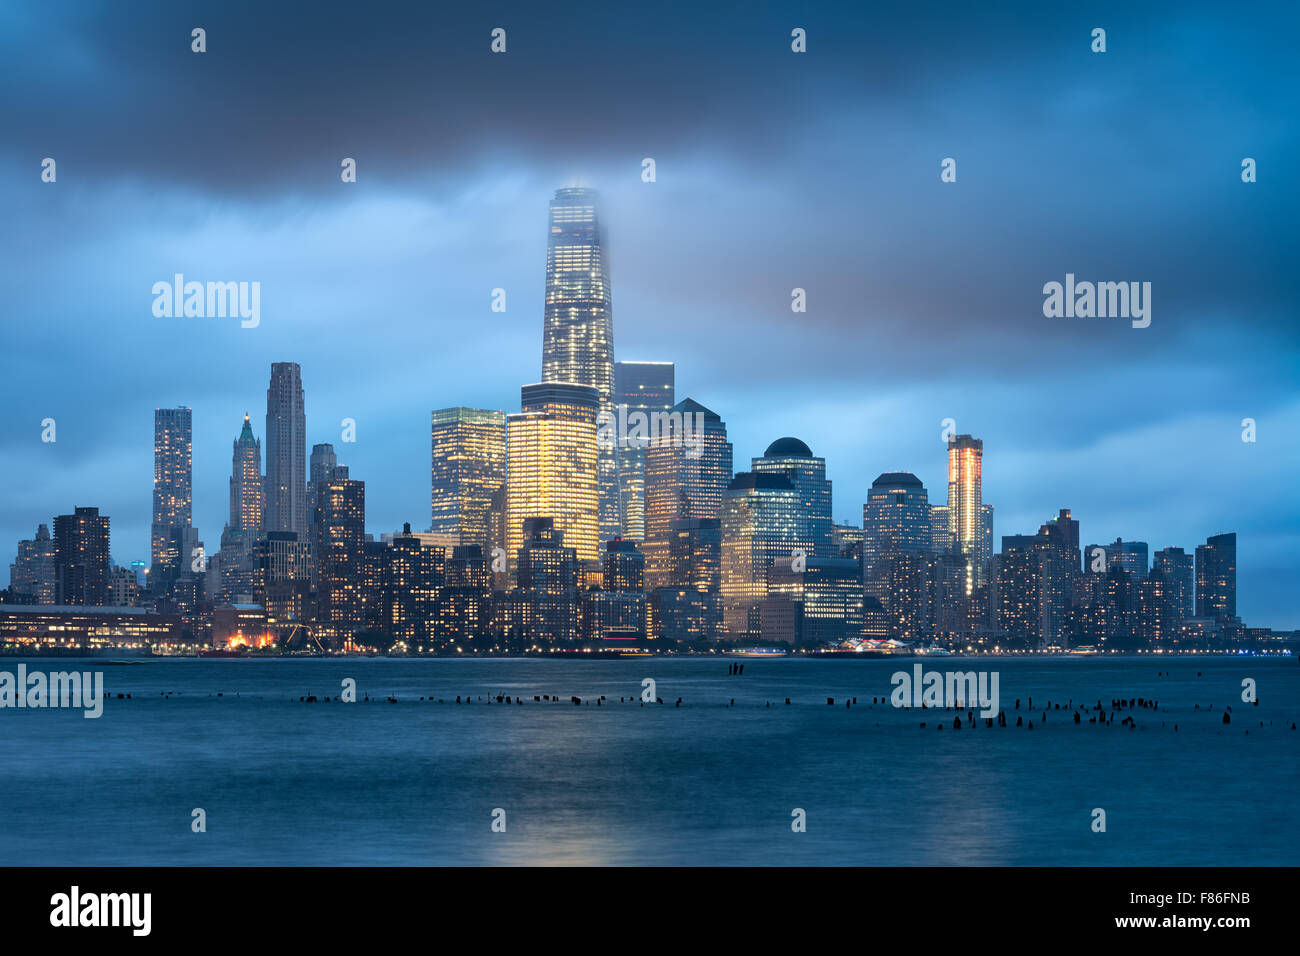 Lower Manhattan und Financial District beleuchtet Wolkenkratzer mit Gewitterwolken, New York City. World Trade Center Stockbild